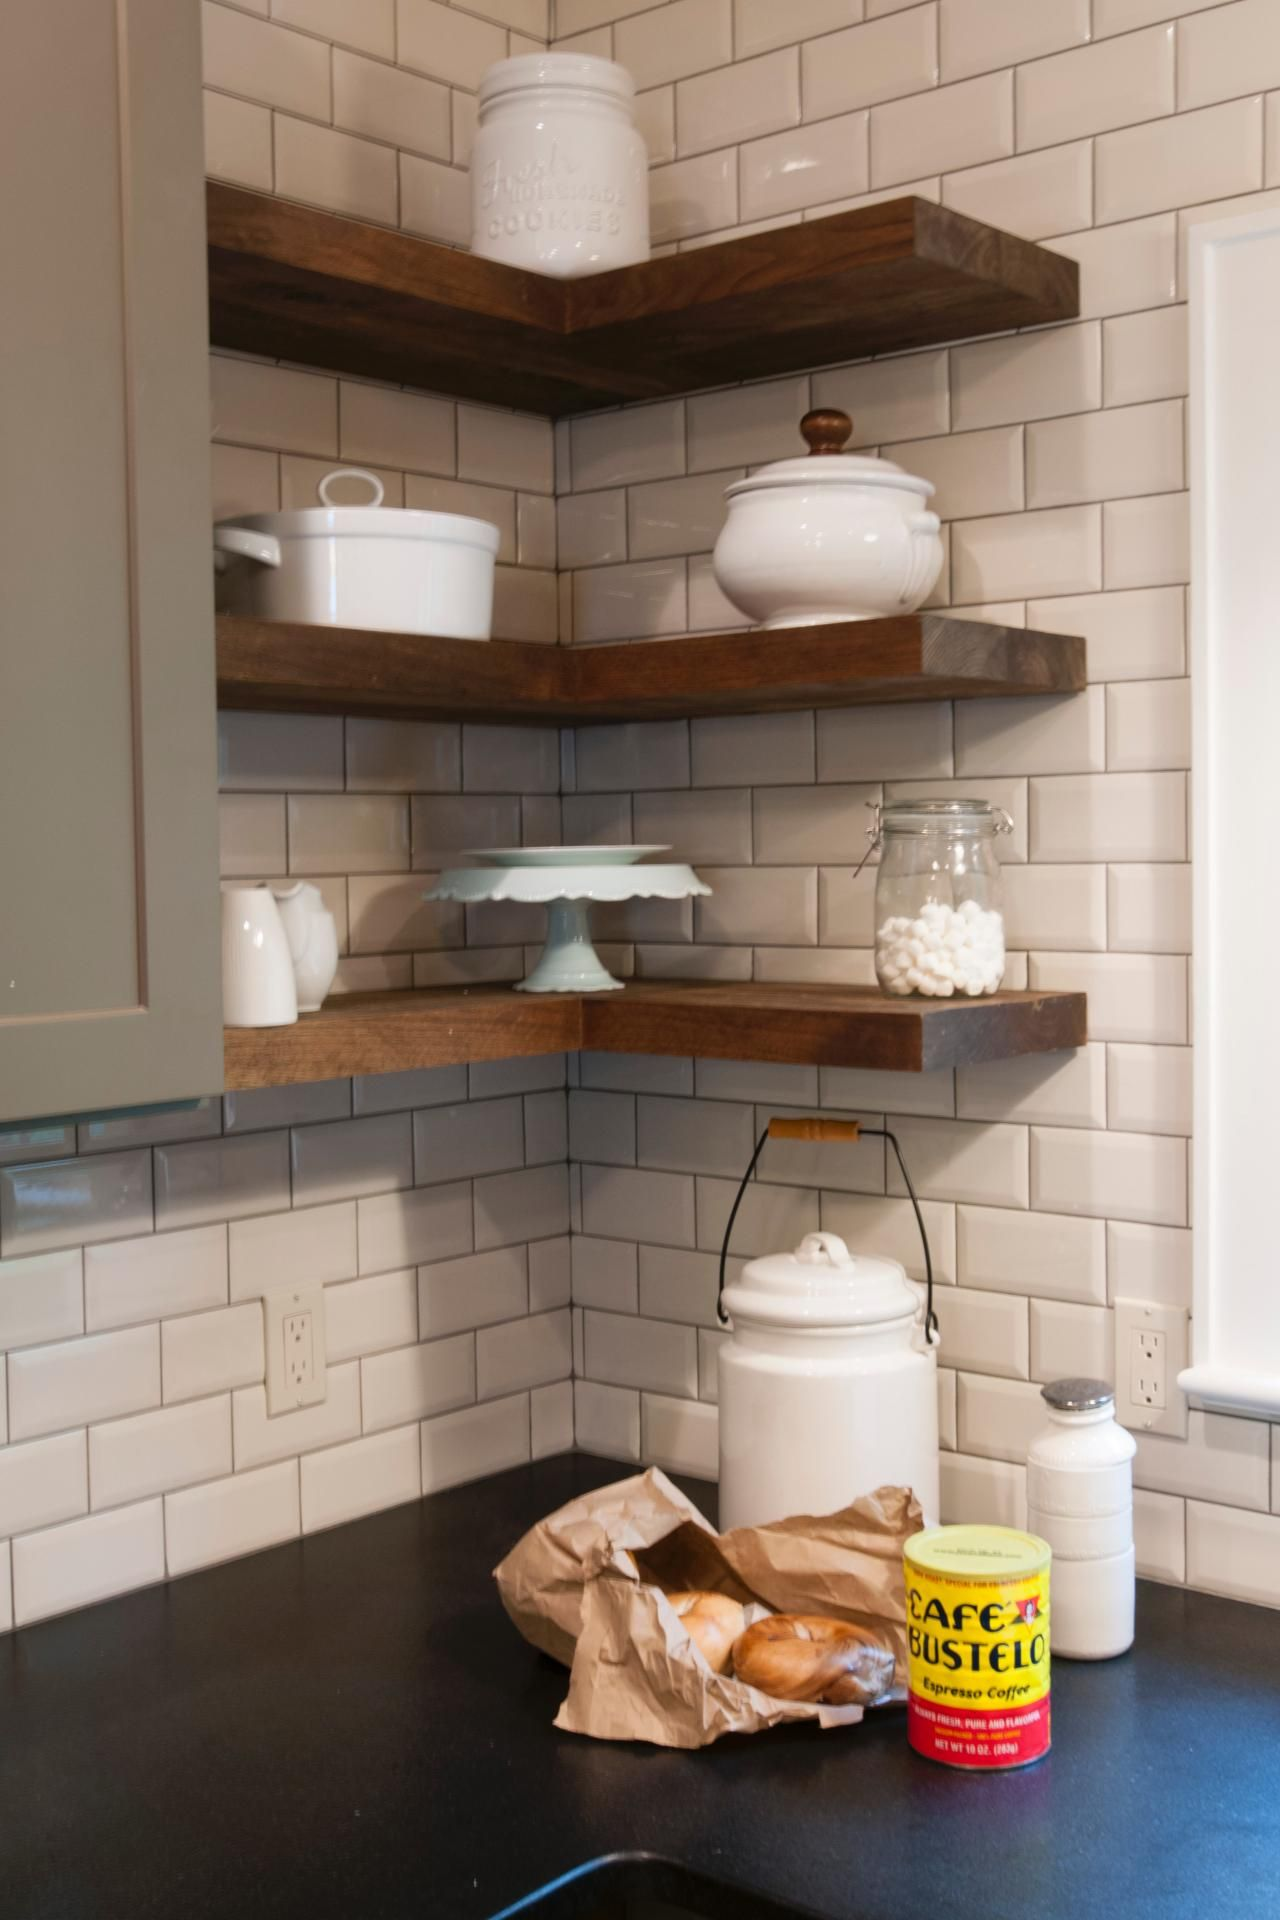 you are living small apartment then getting the most floating kitchen corner shelves space available one things that will help live big over there diy mini shelf command hook